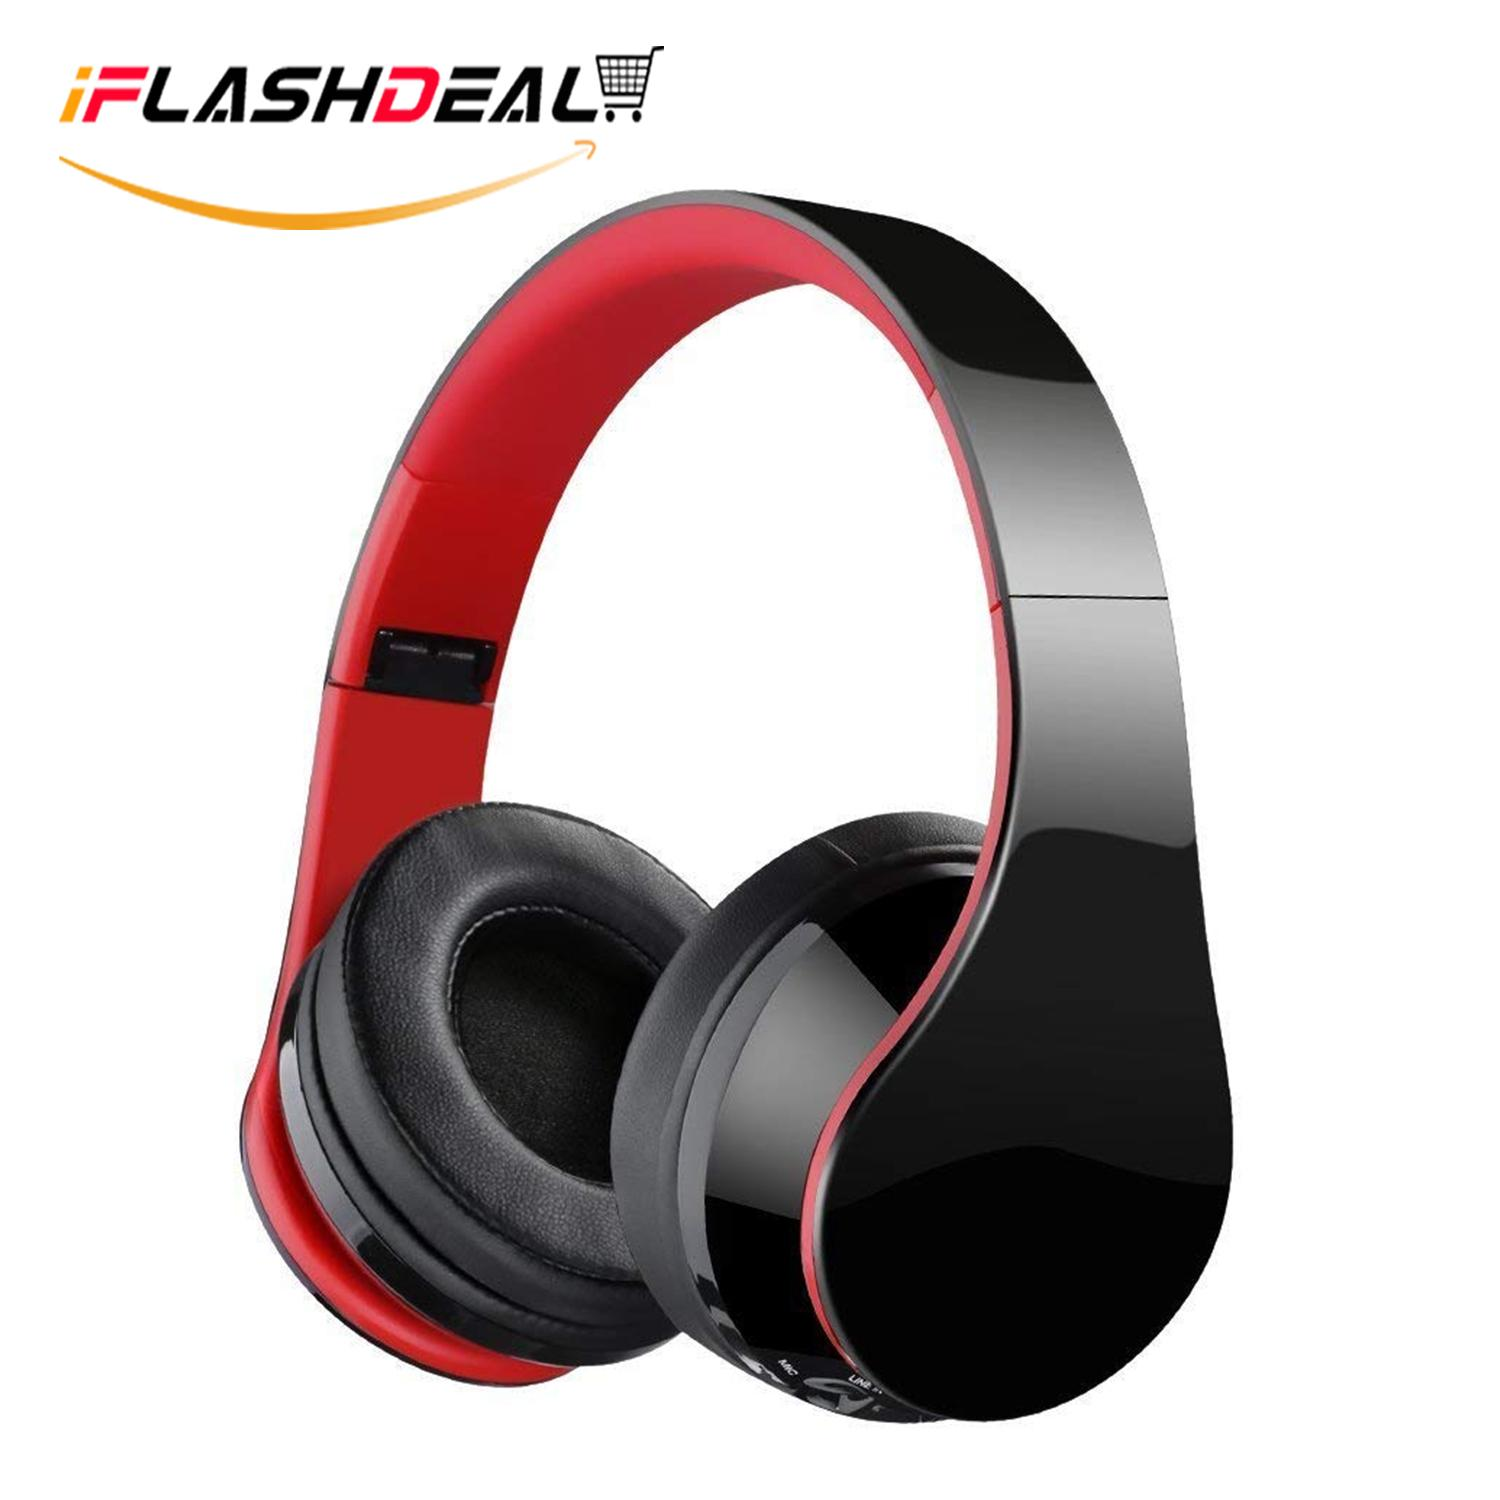 Iflashdeal Nirkabel Bluetooth Headphone Foldable Headset Kebisingan Isolasi Atas Telinga Earphone Dengan Mic, (merah) By Iflashdeal.